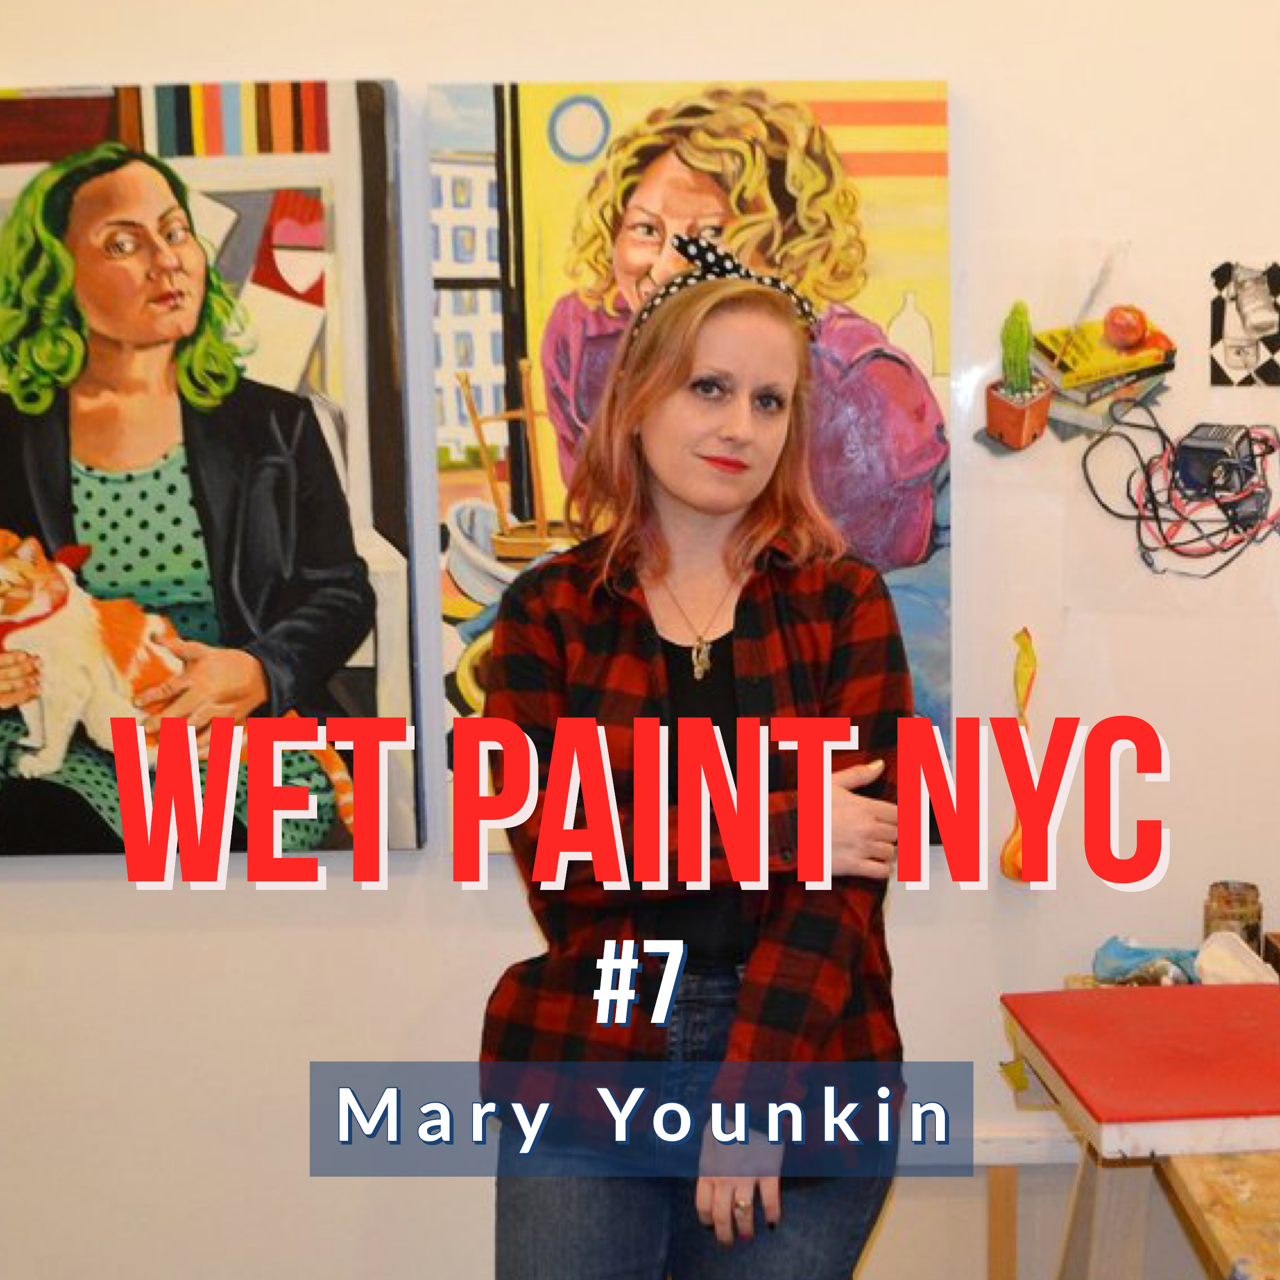 Artist Mary Younkin discusses staying organized, community, residencies, current projects and inspirational women.